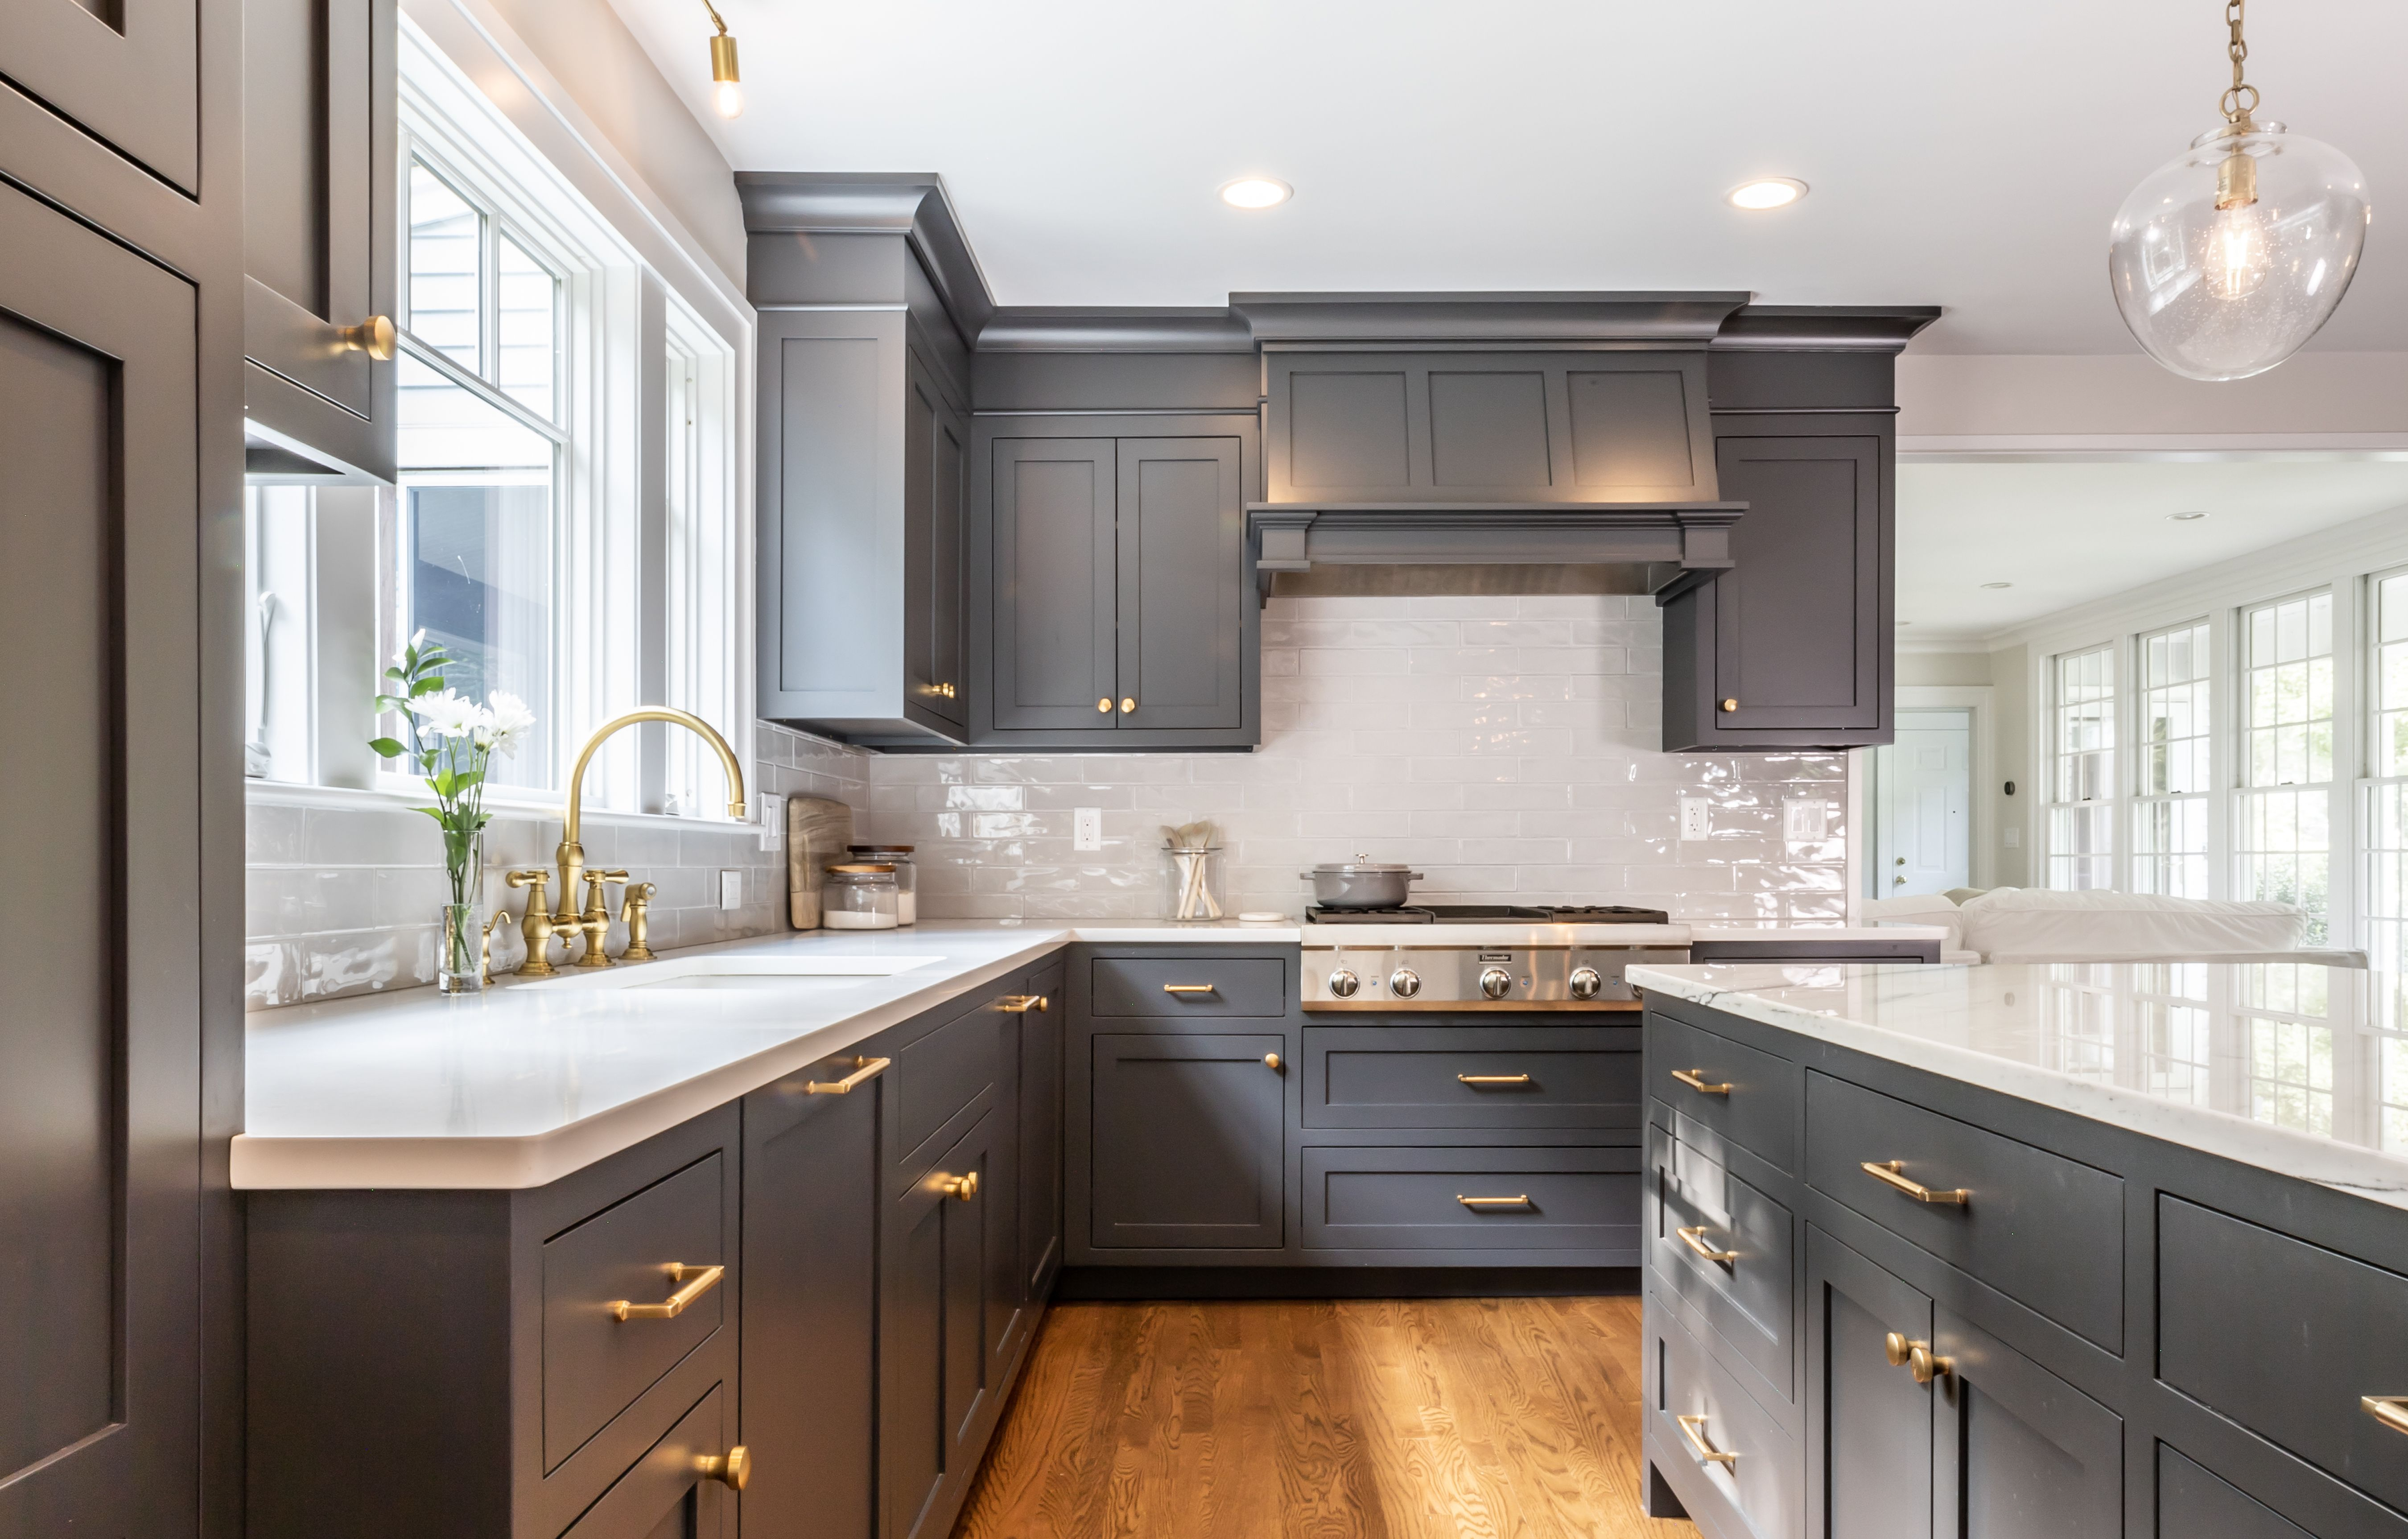 Before And After Home Remodel Reveals Thermador Home Appliance Blog Diy Kitchen Renovation Grey Kitchen Cabinets Traditional Kitchen Design